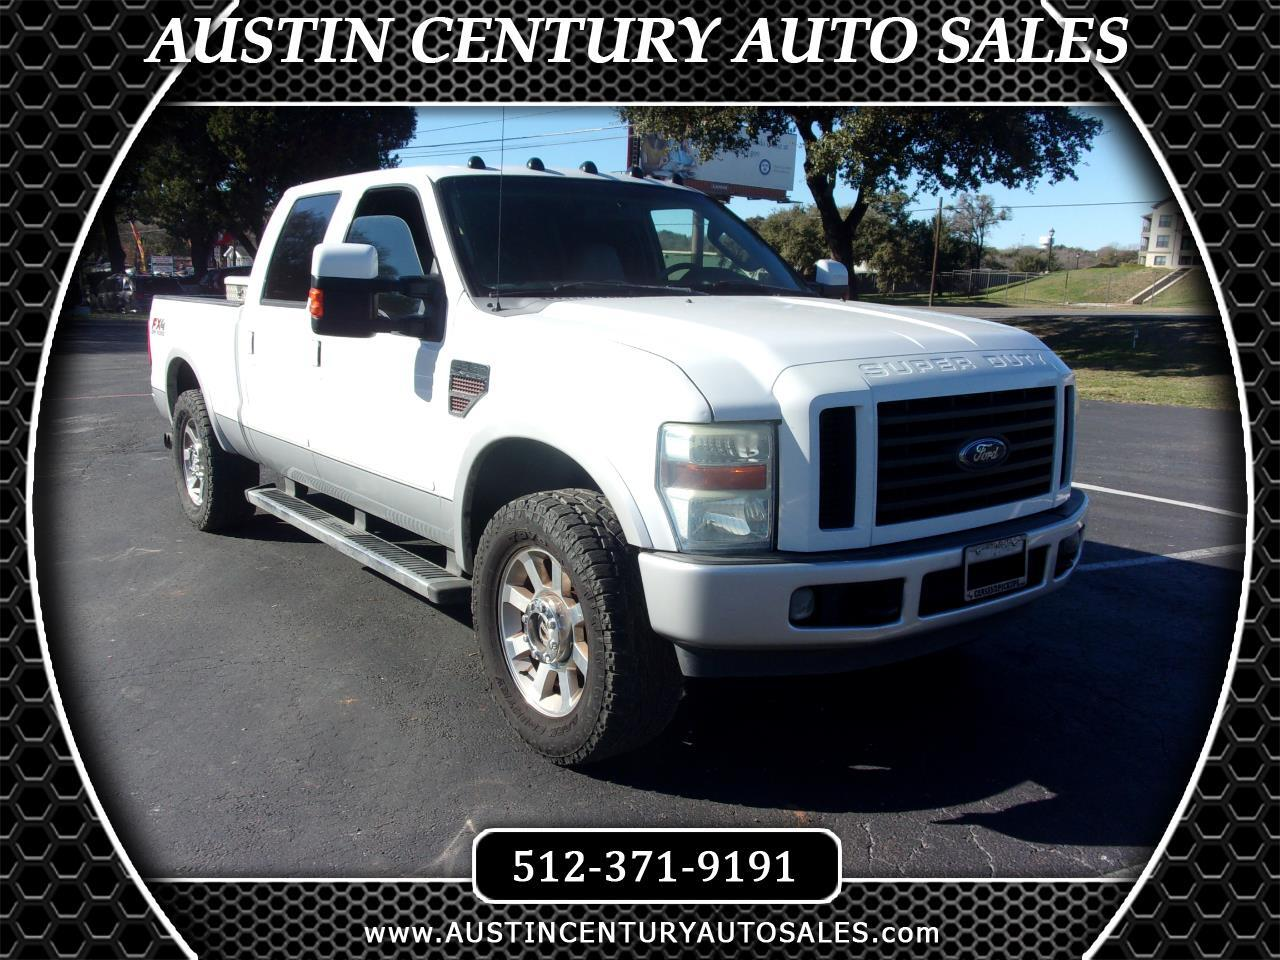 Ford F-250 SD Lariat Crew Cab Long Bed 4WD 2010